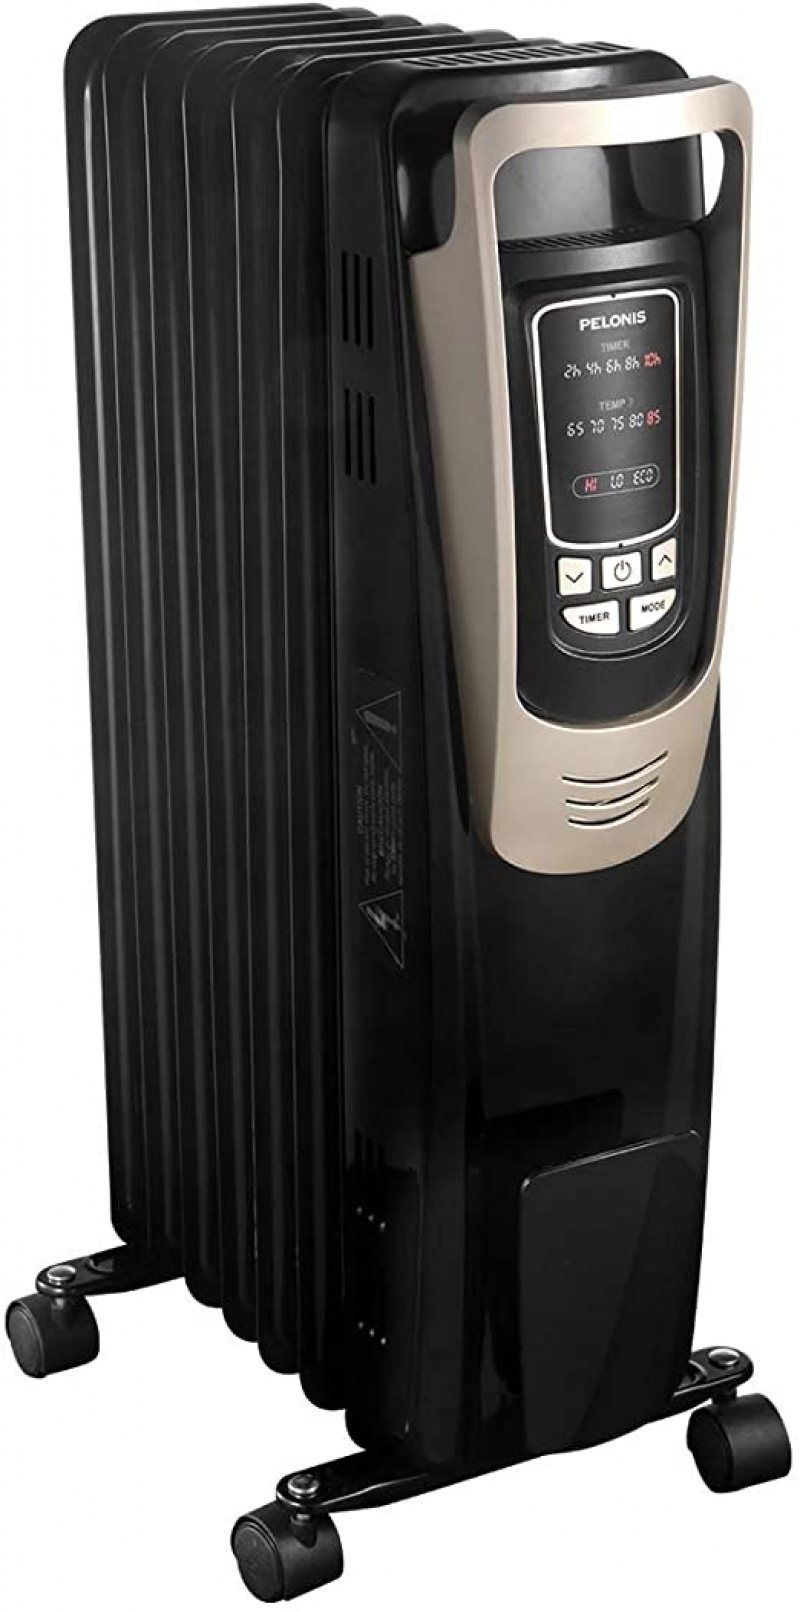 ihocon: PELONIS Oil Filled Radiator Heater with Programmable Thermostat, 10H Timer 電暖爐